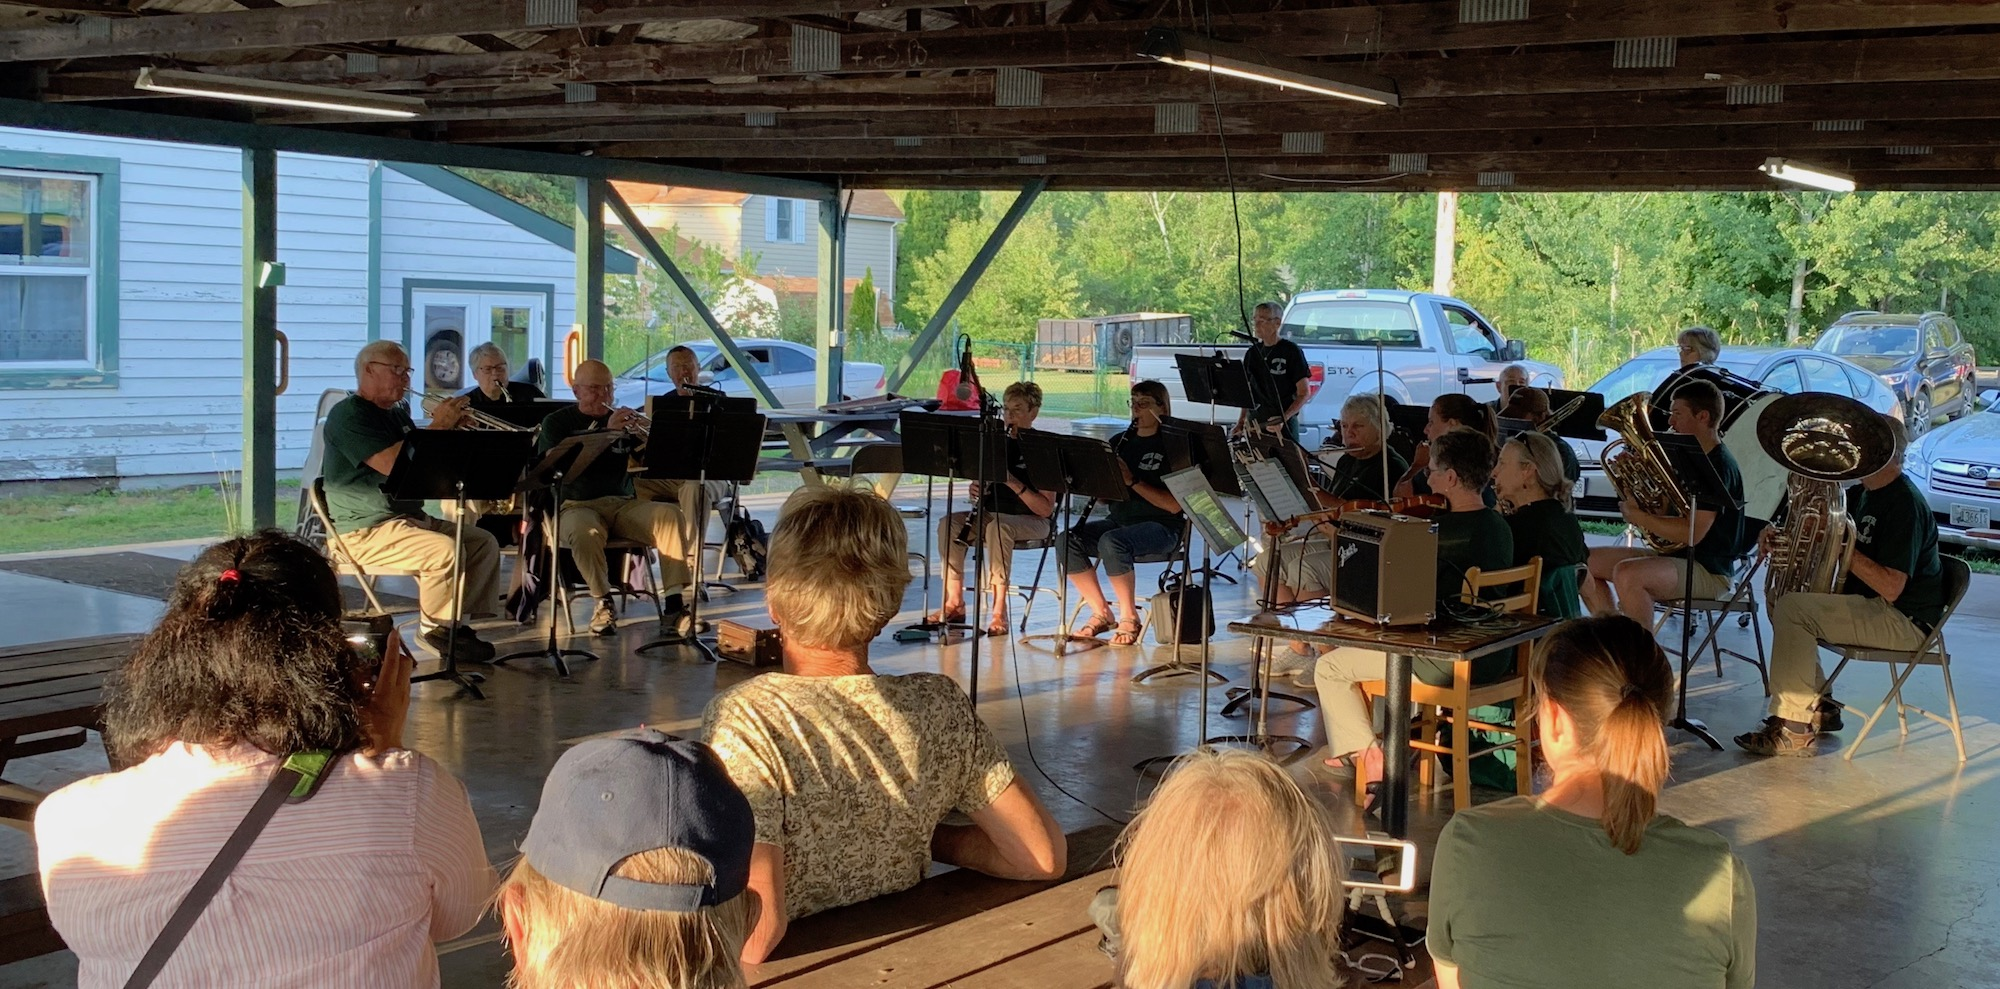 Community Band - August 15, 2019